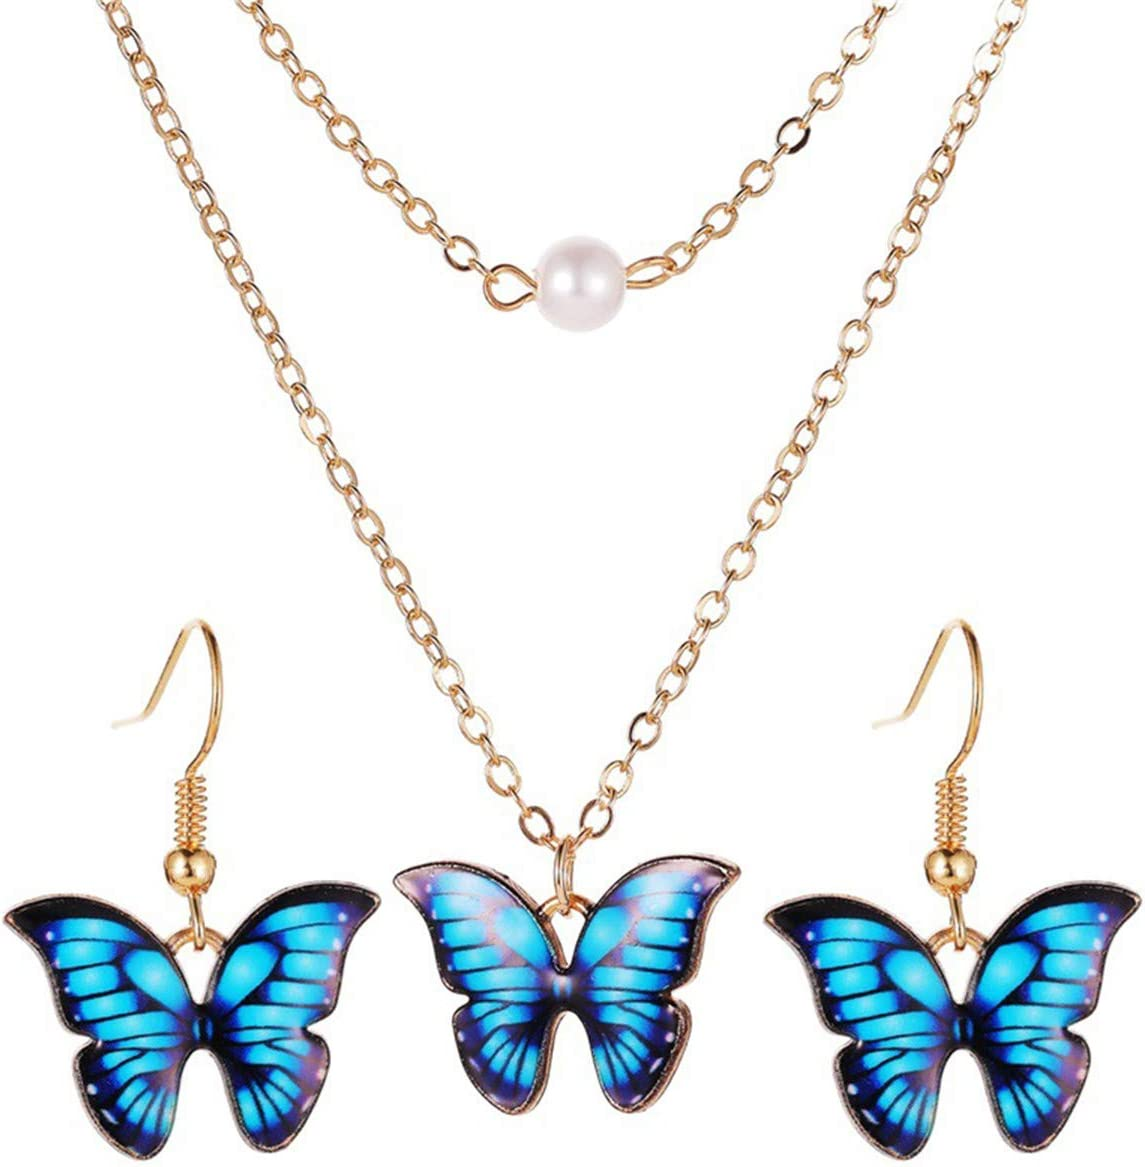 CH01 Butterfly Jewelry Sets Necklace Earrings for Women Colorful Double Faux Pearl Butterfly Pendant Necklace Earrings Jewelry Set